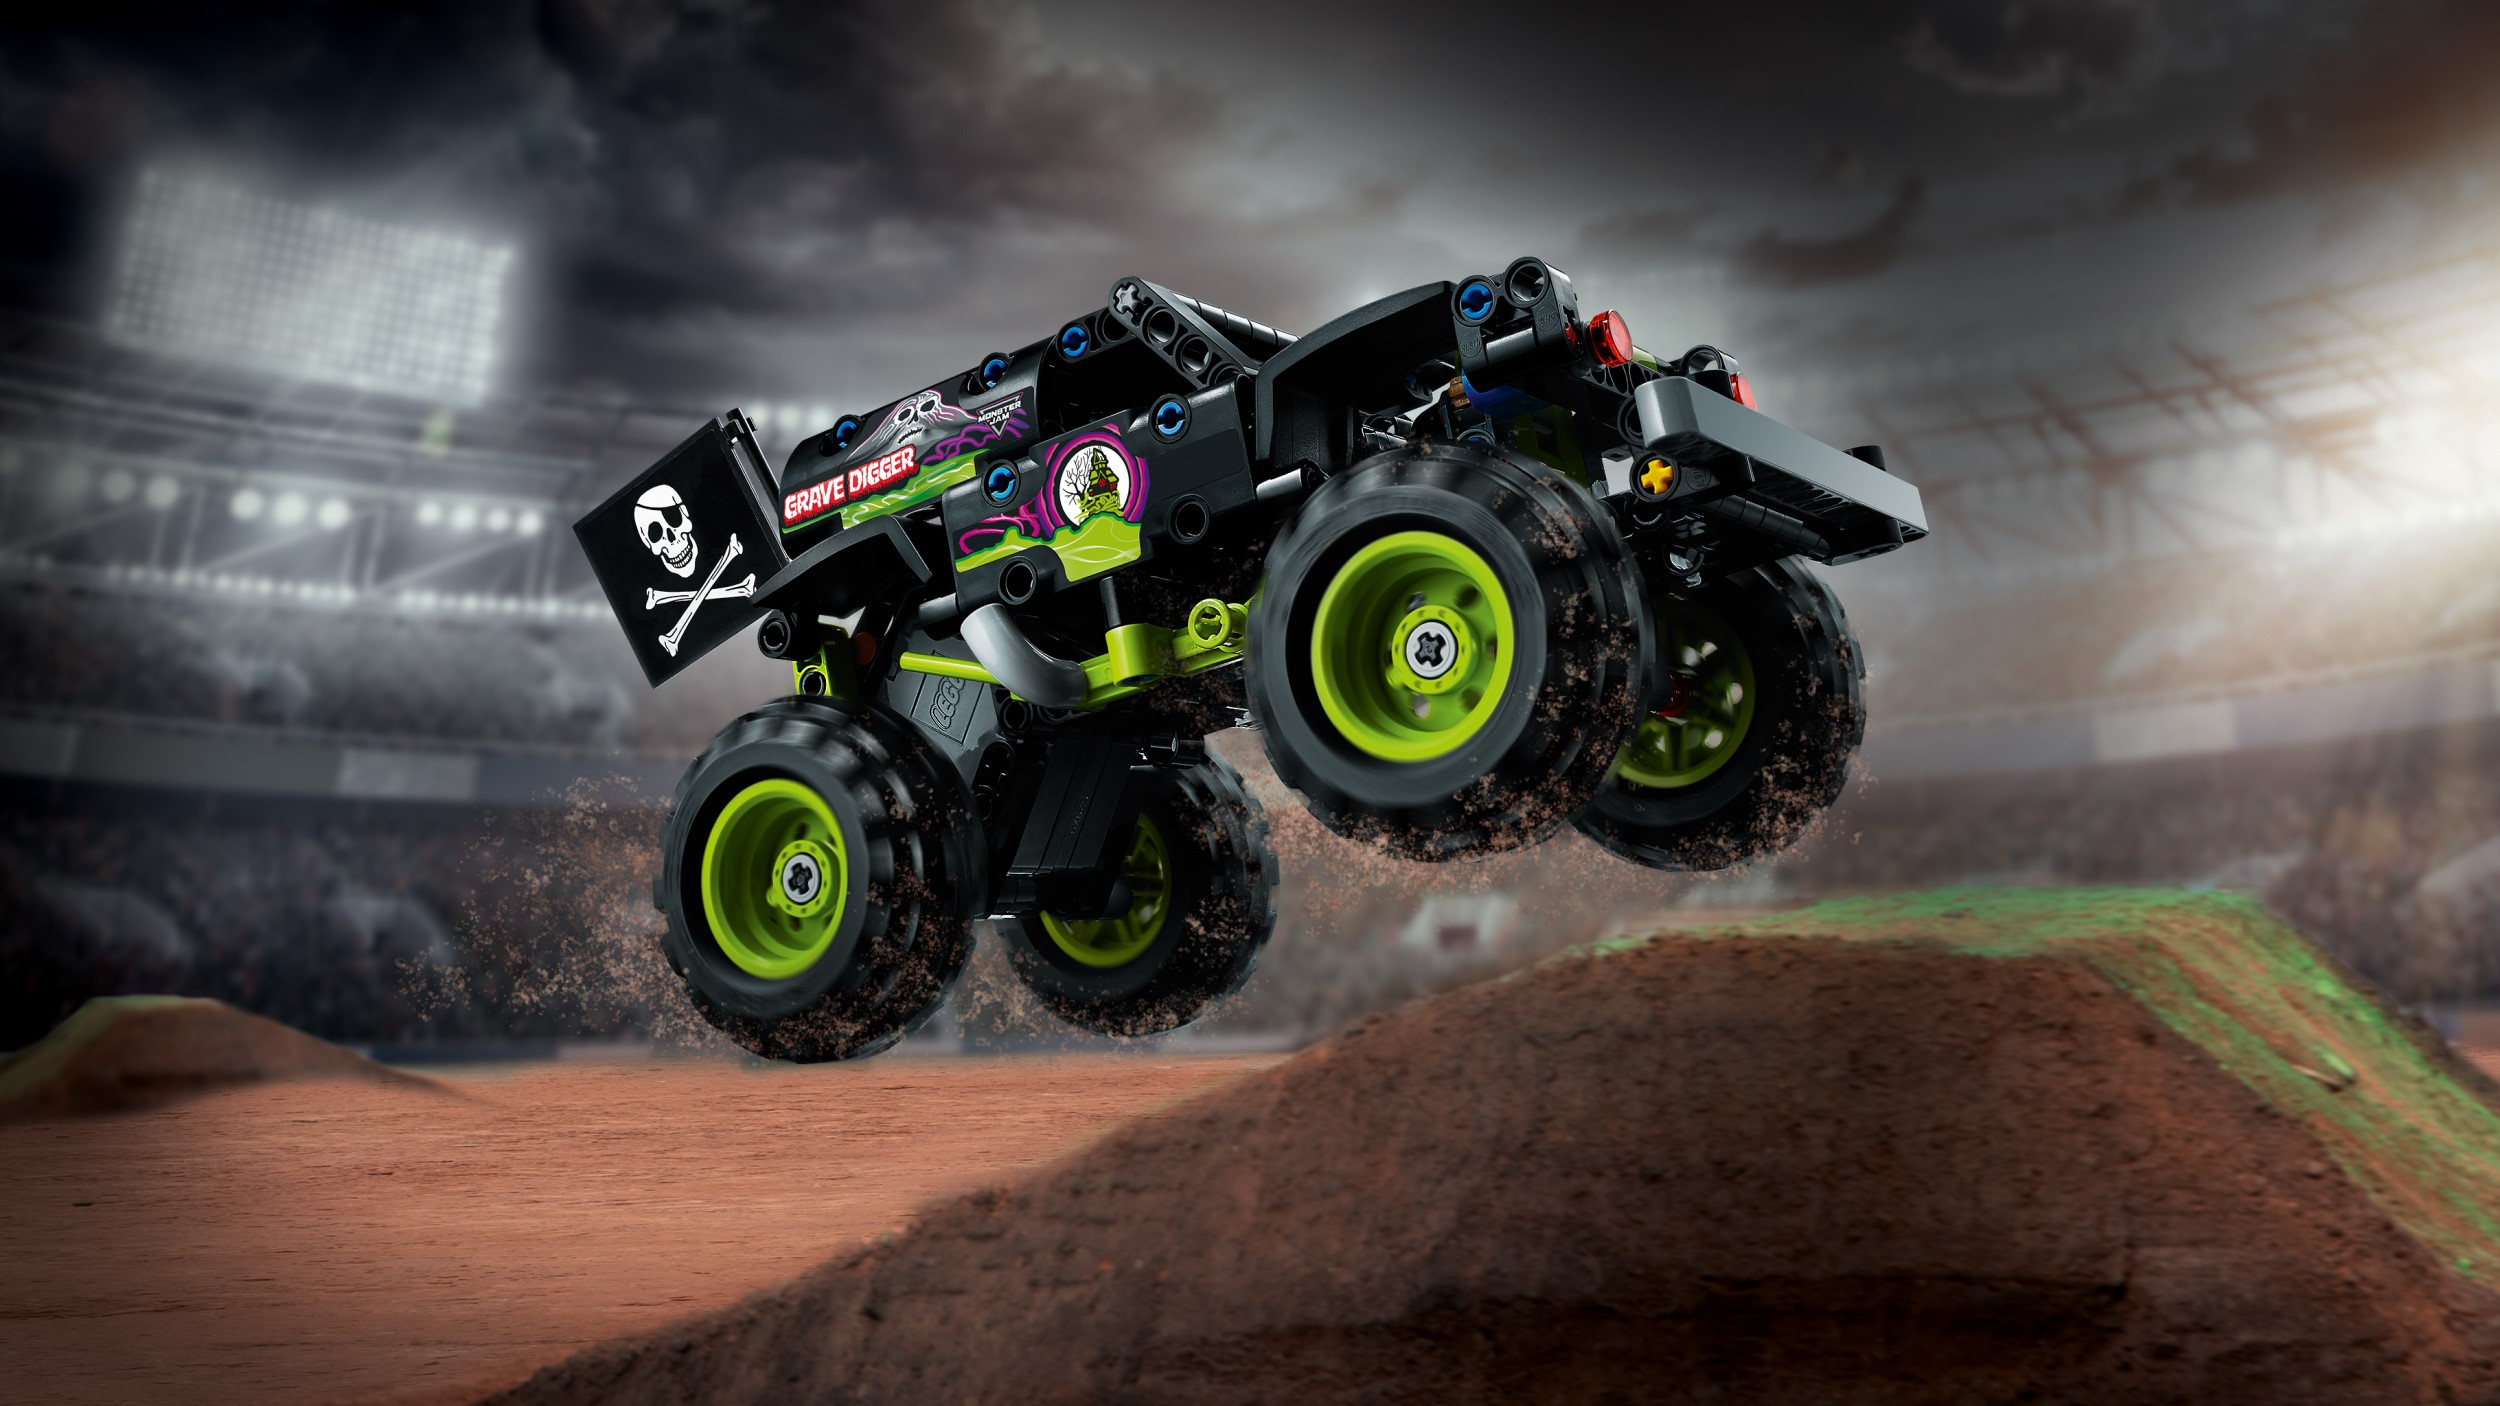 LEGO Technic Monster Jam series gets two new monster truck replicas 13